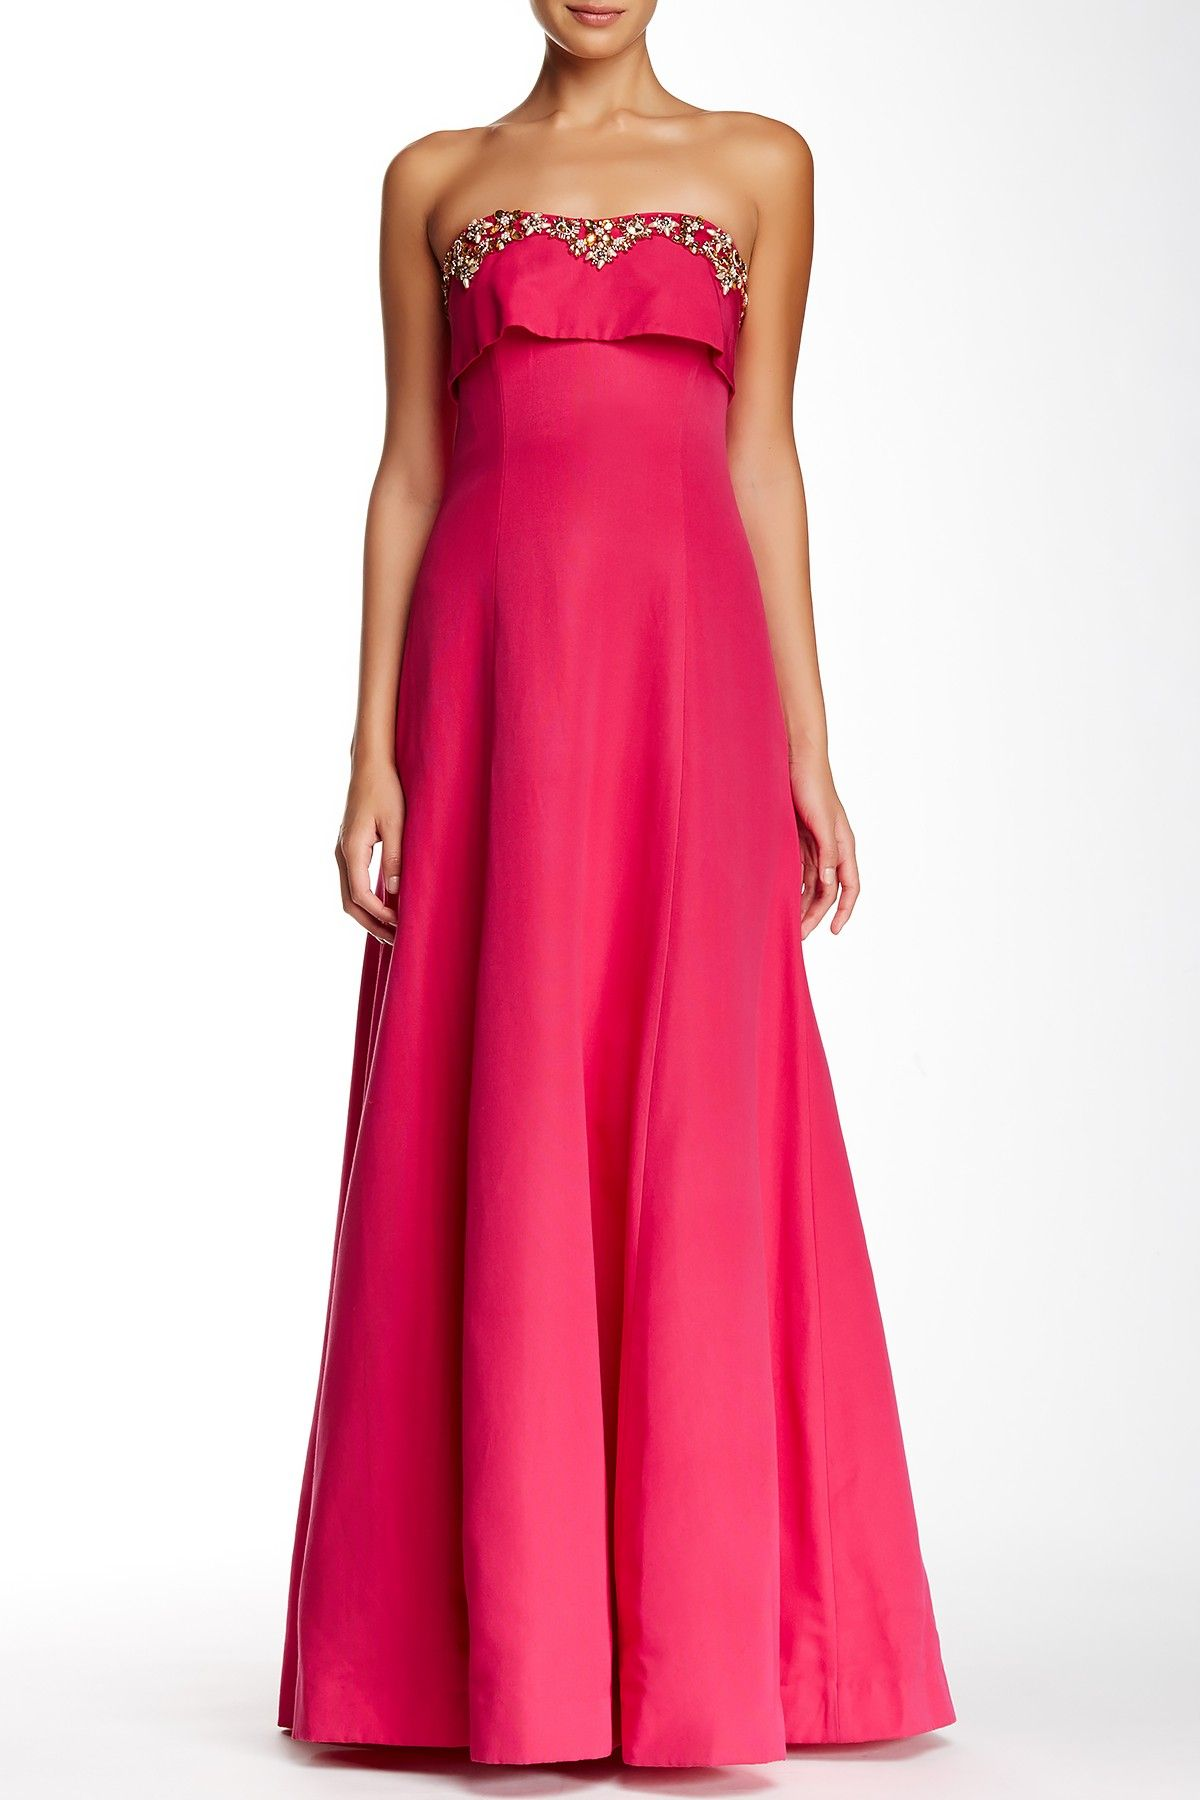 Marchesa Notte | Beaded Bodice Strapless Gown | Strapless gown ...